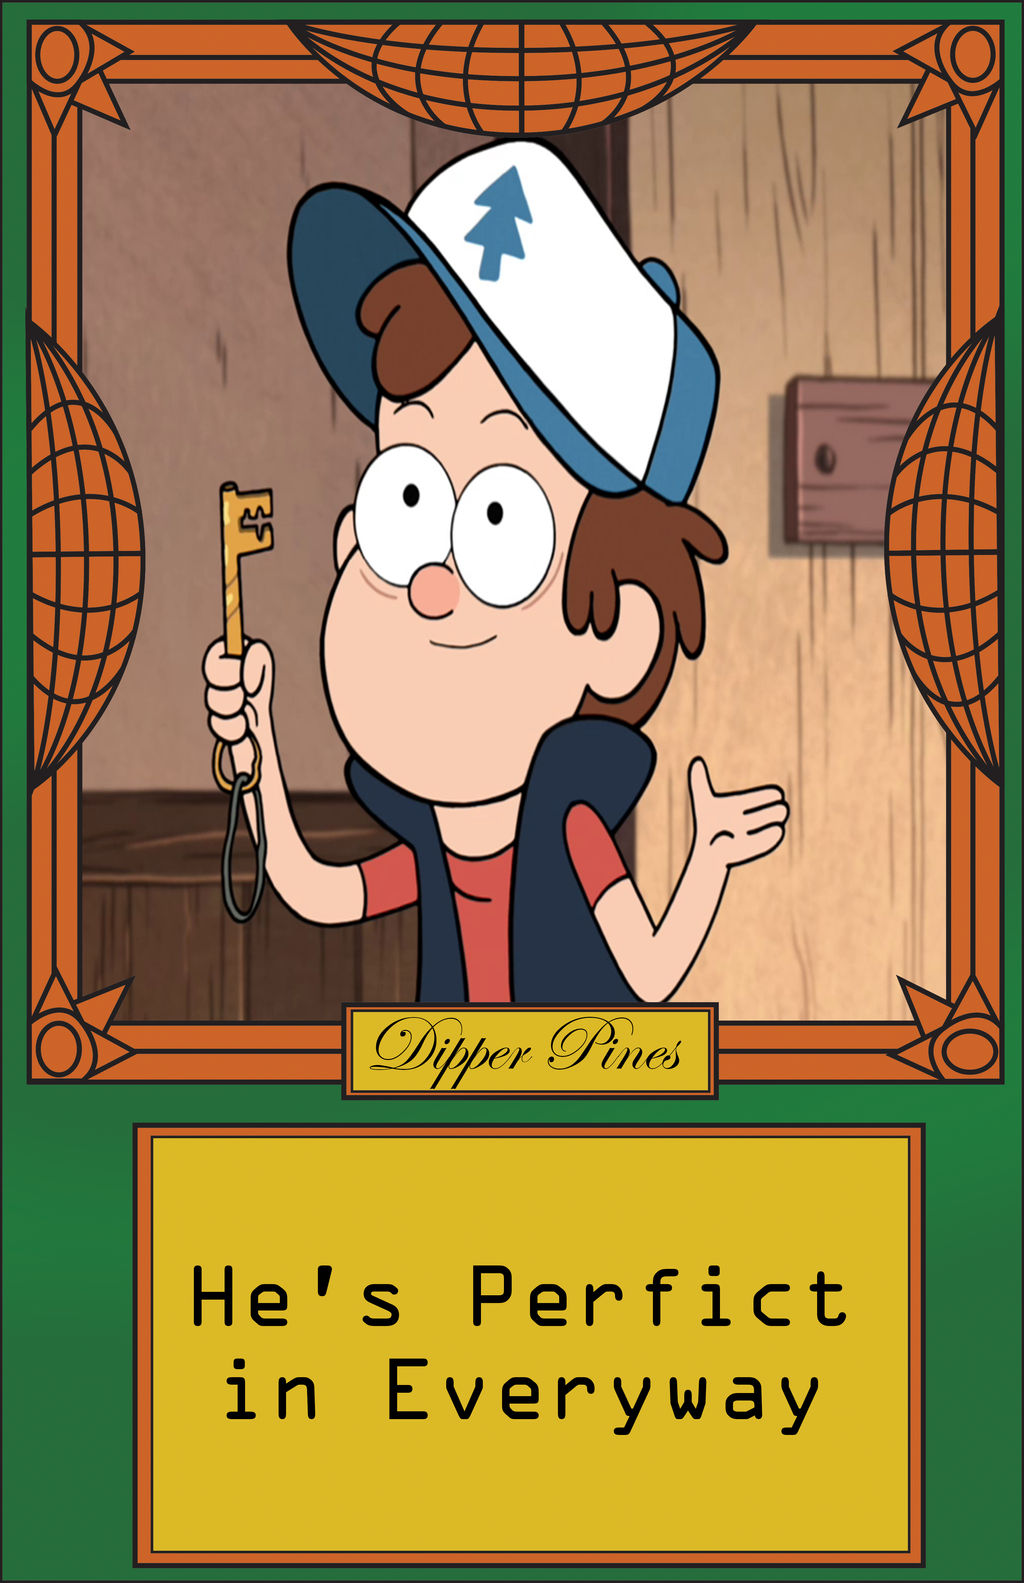 Perfect Charater Meme Dipper Pines